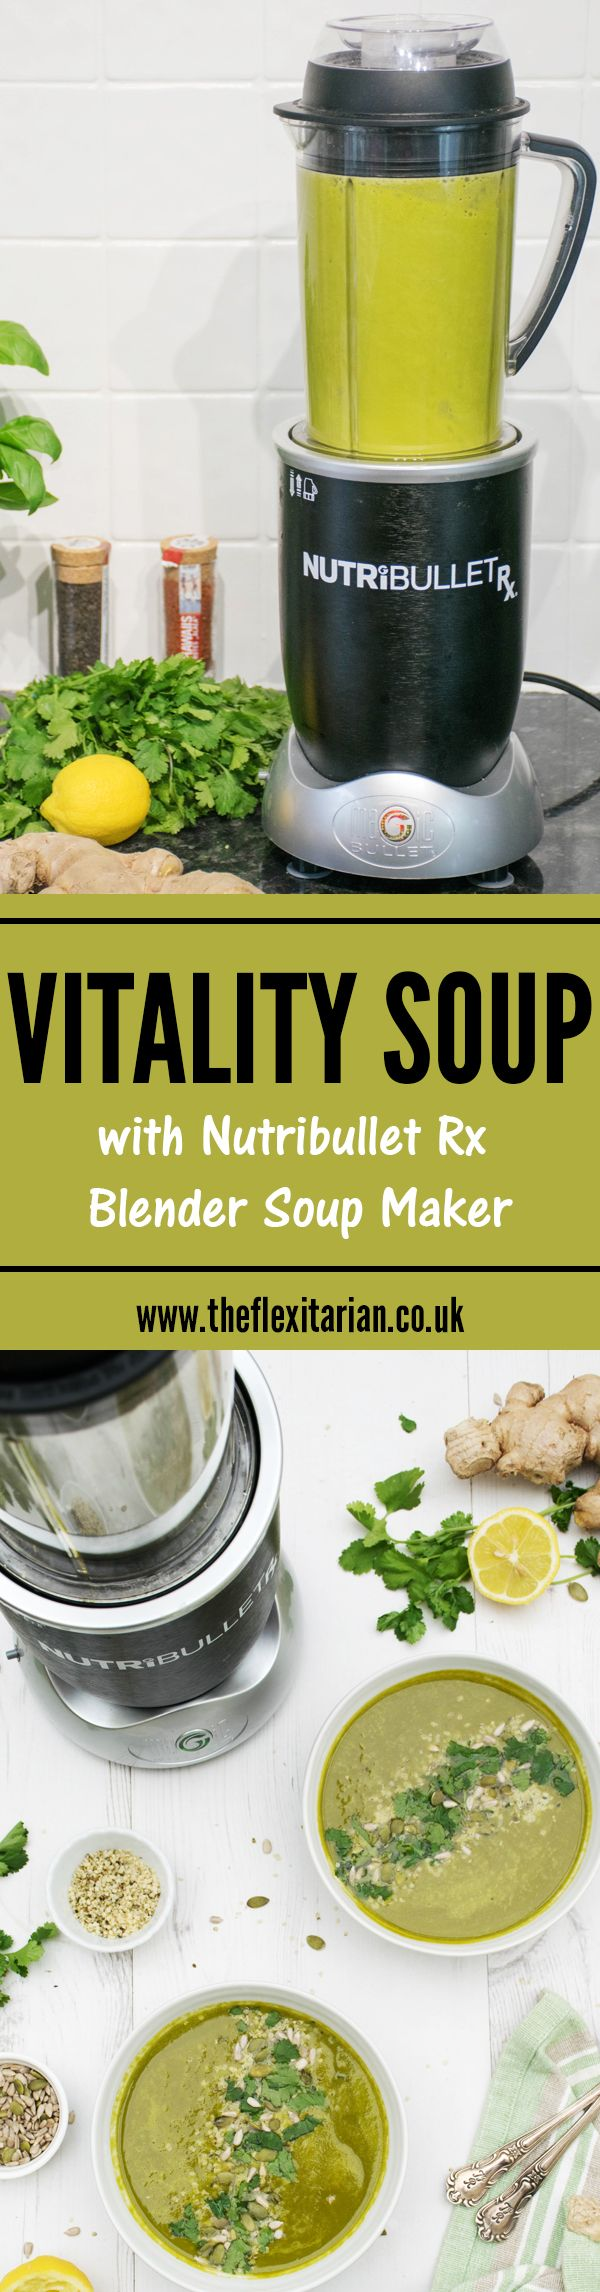 Vitality Soup with Nutribullet Rx [vegan] [gluten free] by The Flexitarian